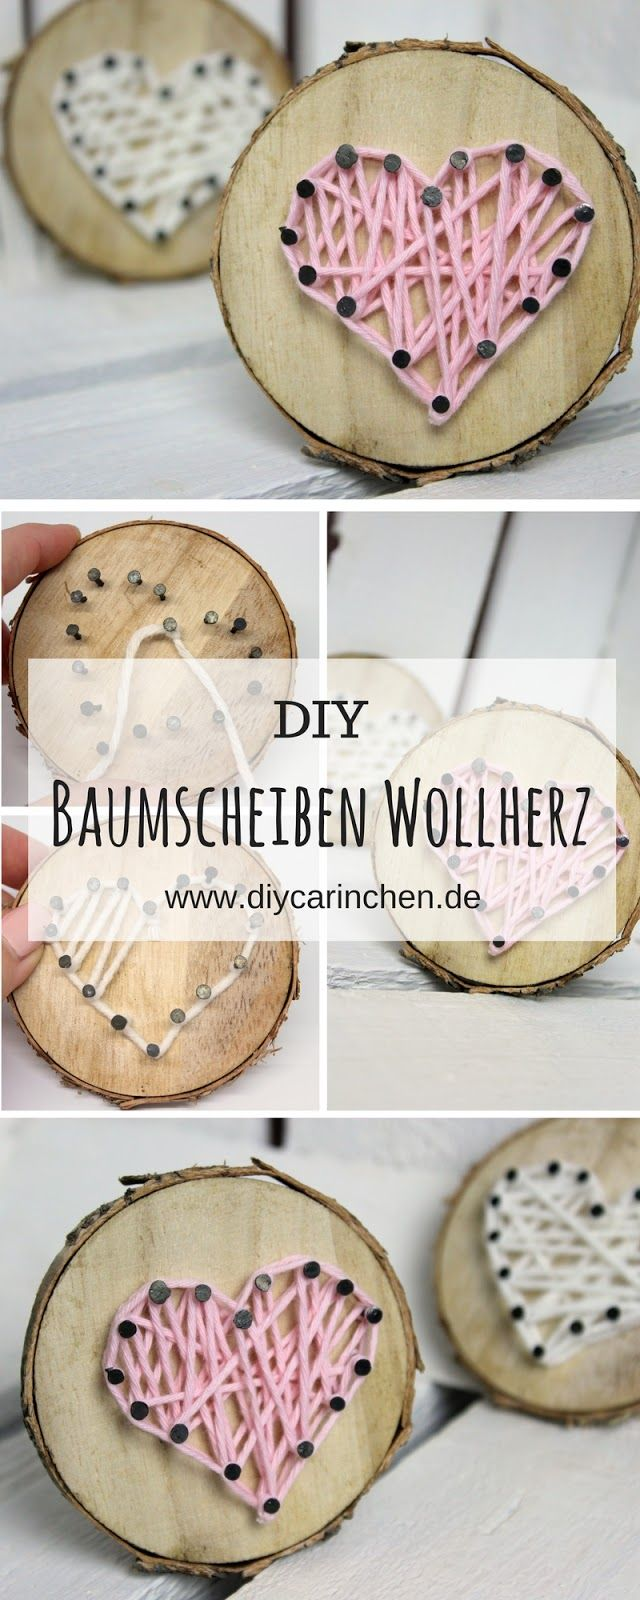 diy s es geschenk zum valentinstag baumscheibe mit herz in string art holzdeko pinterest. Black Bedroom Furniture Sets. Home Design Ideas